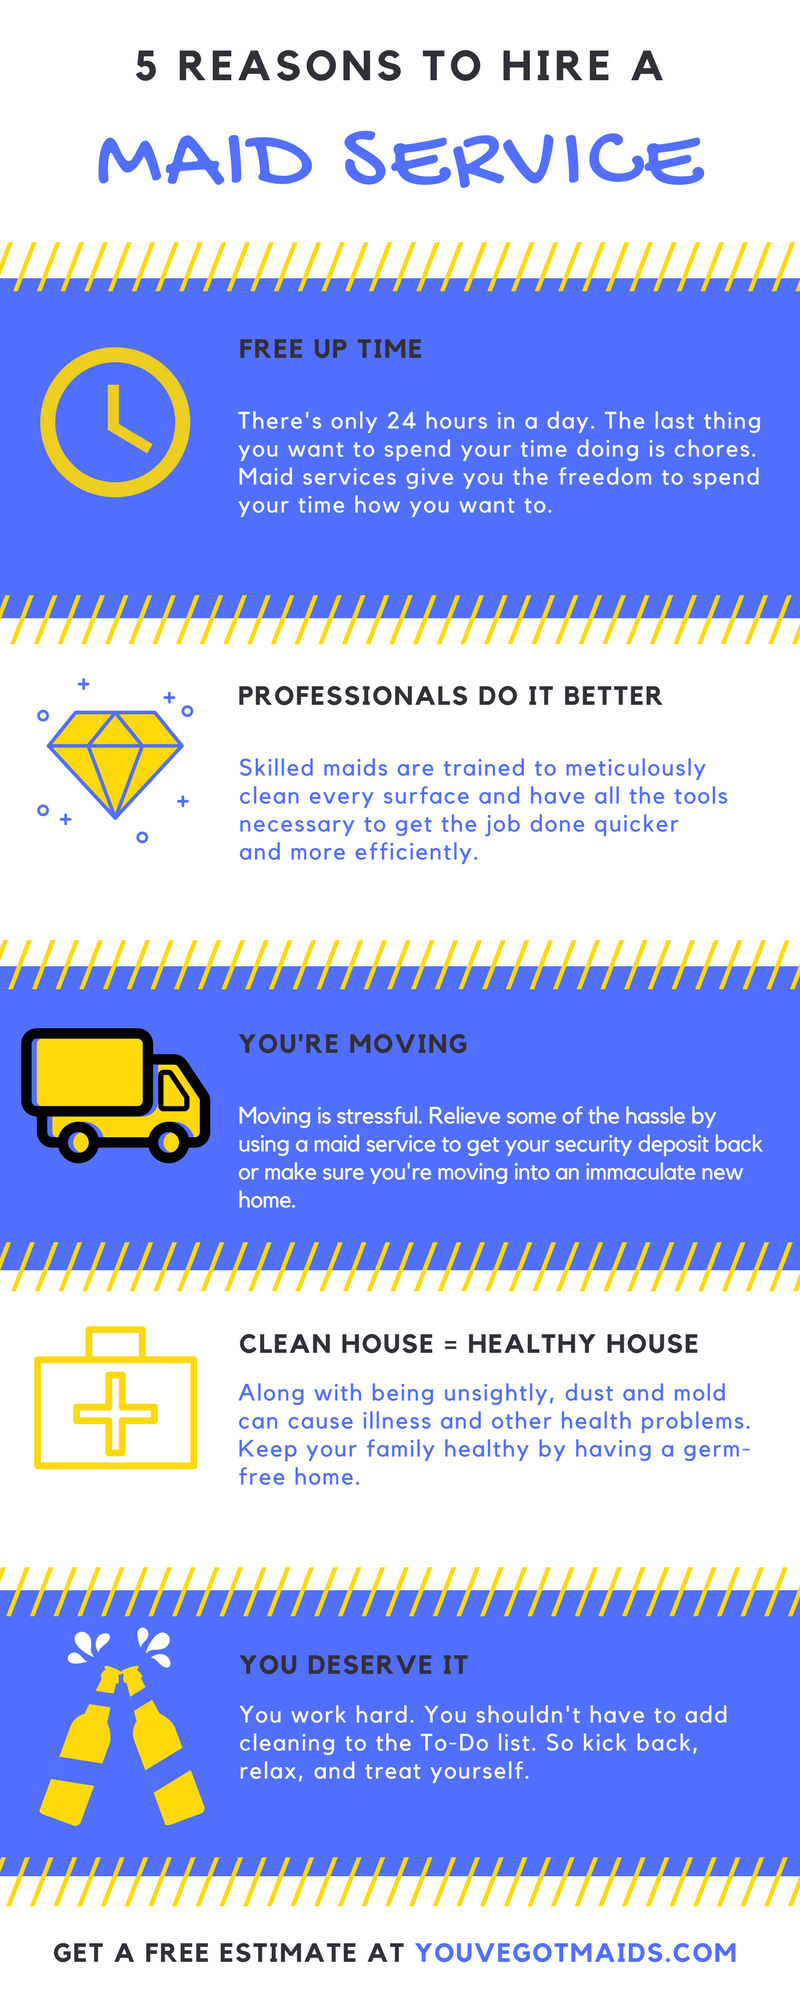 5 reasons to hire a maid service infographic